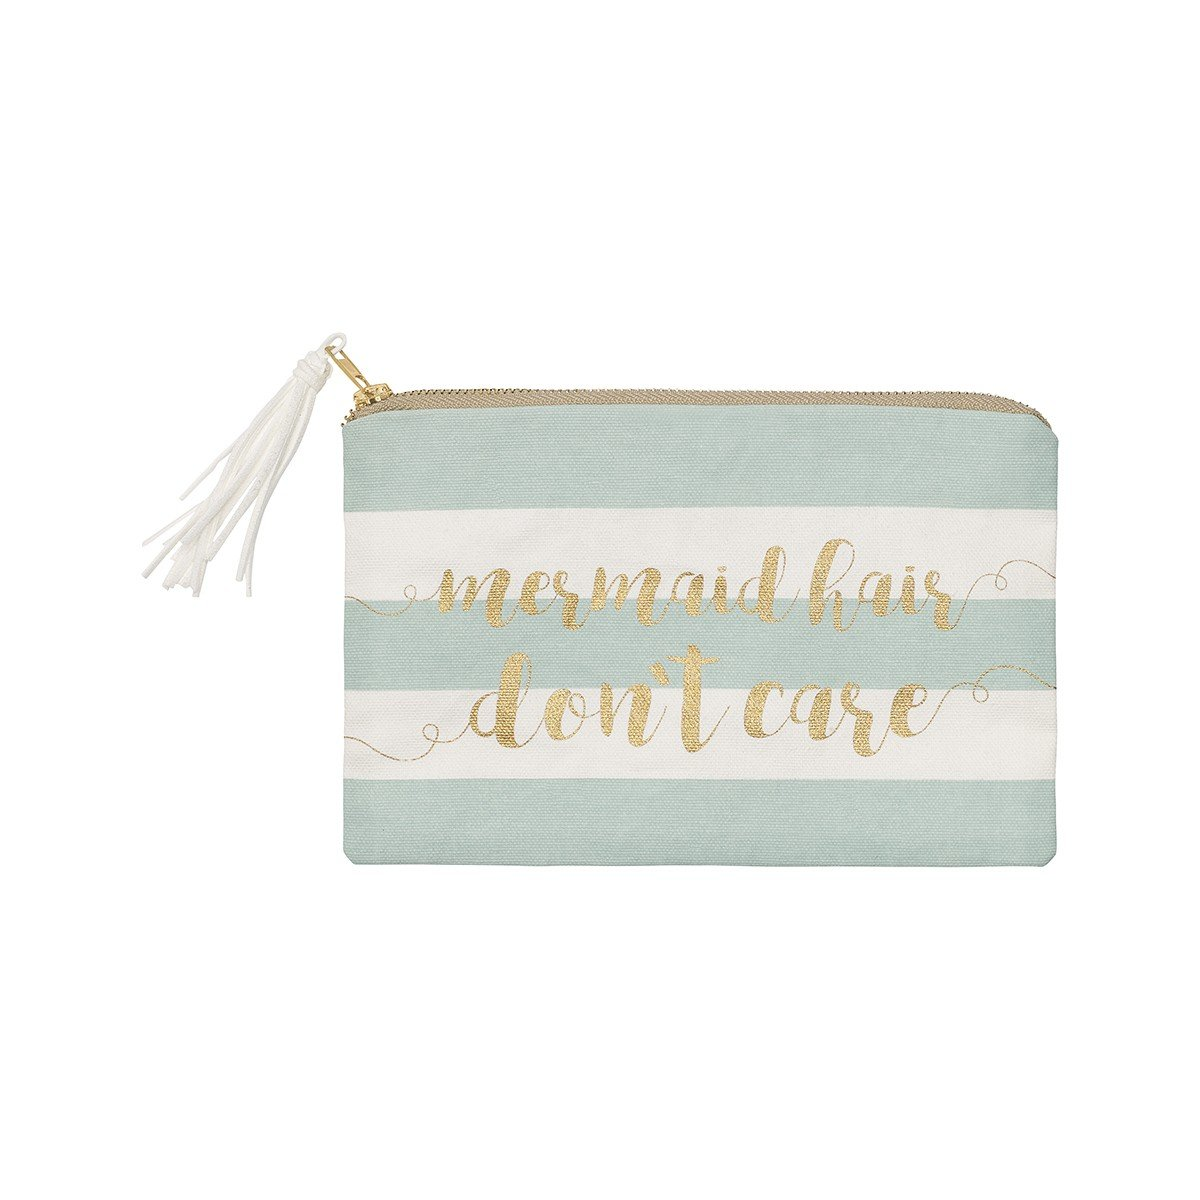 Collins Canvas Mermaid Hair Don't Care Striped Zippered Makeup Cosmetic Bag